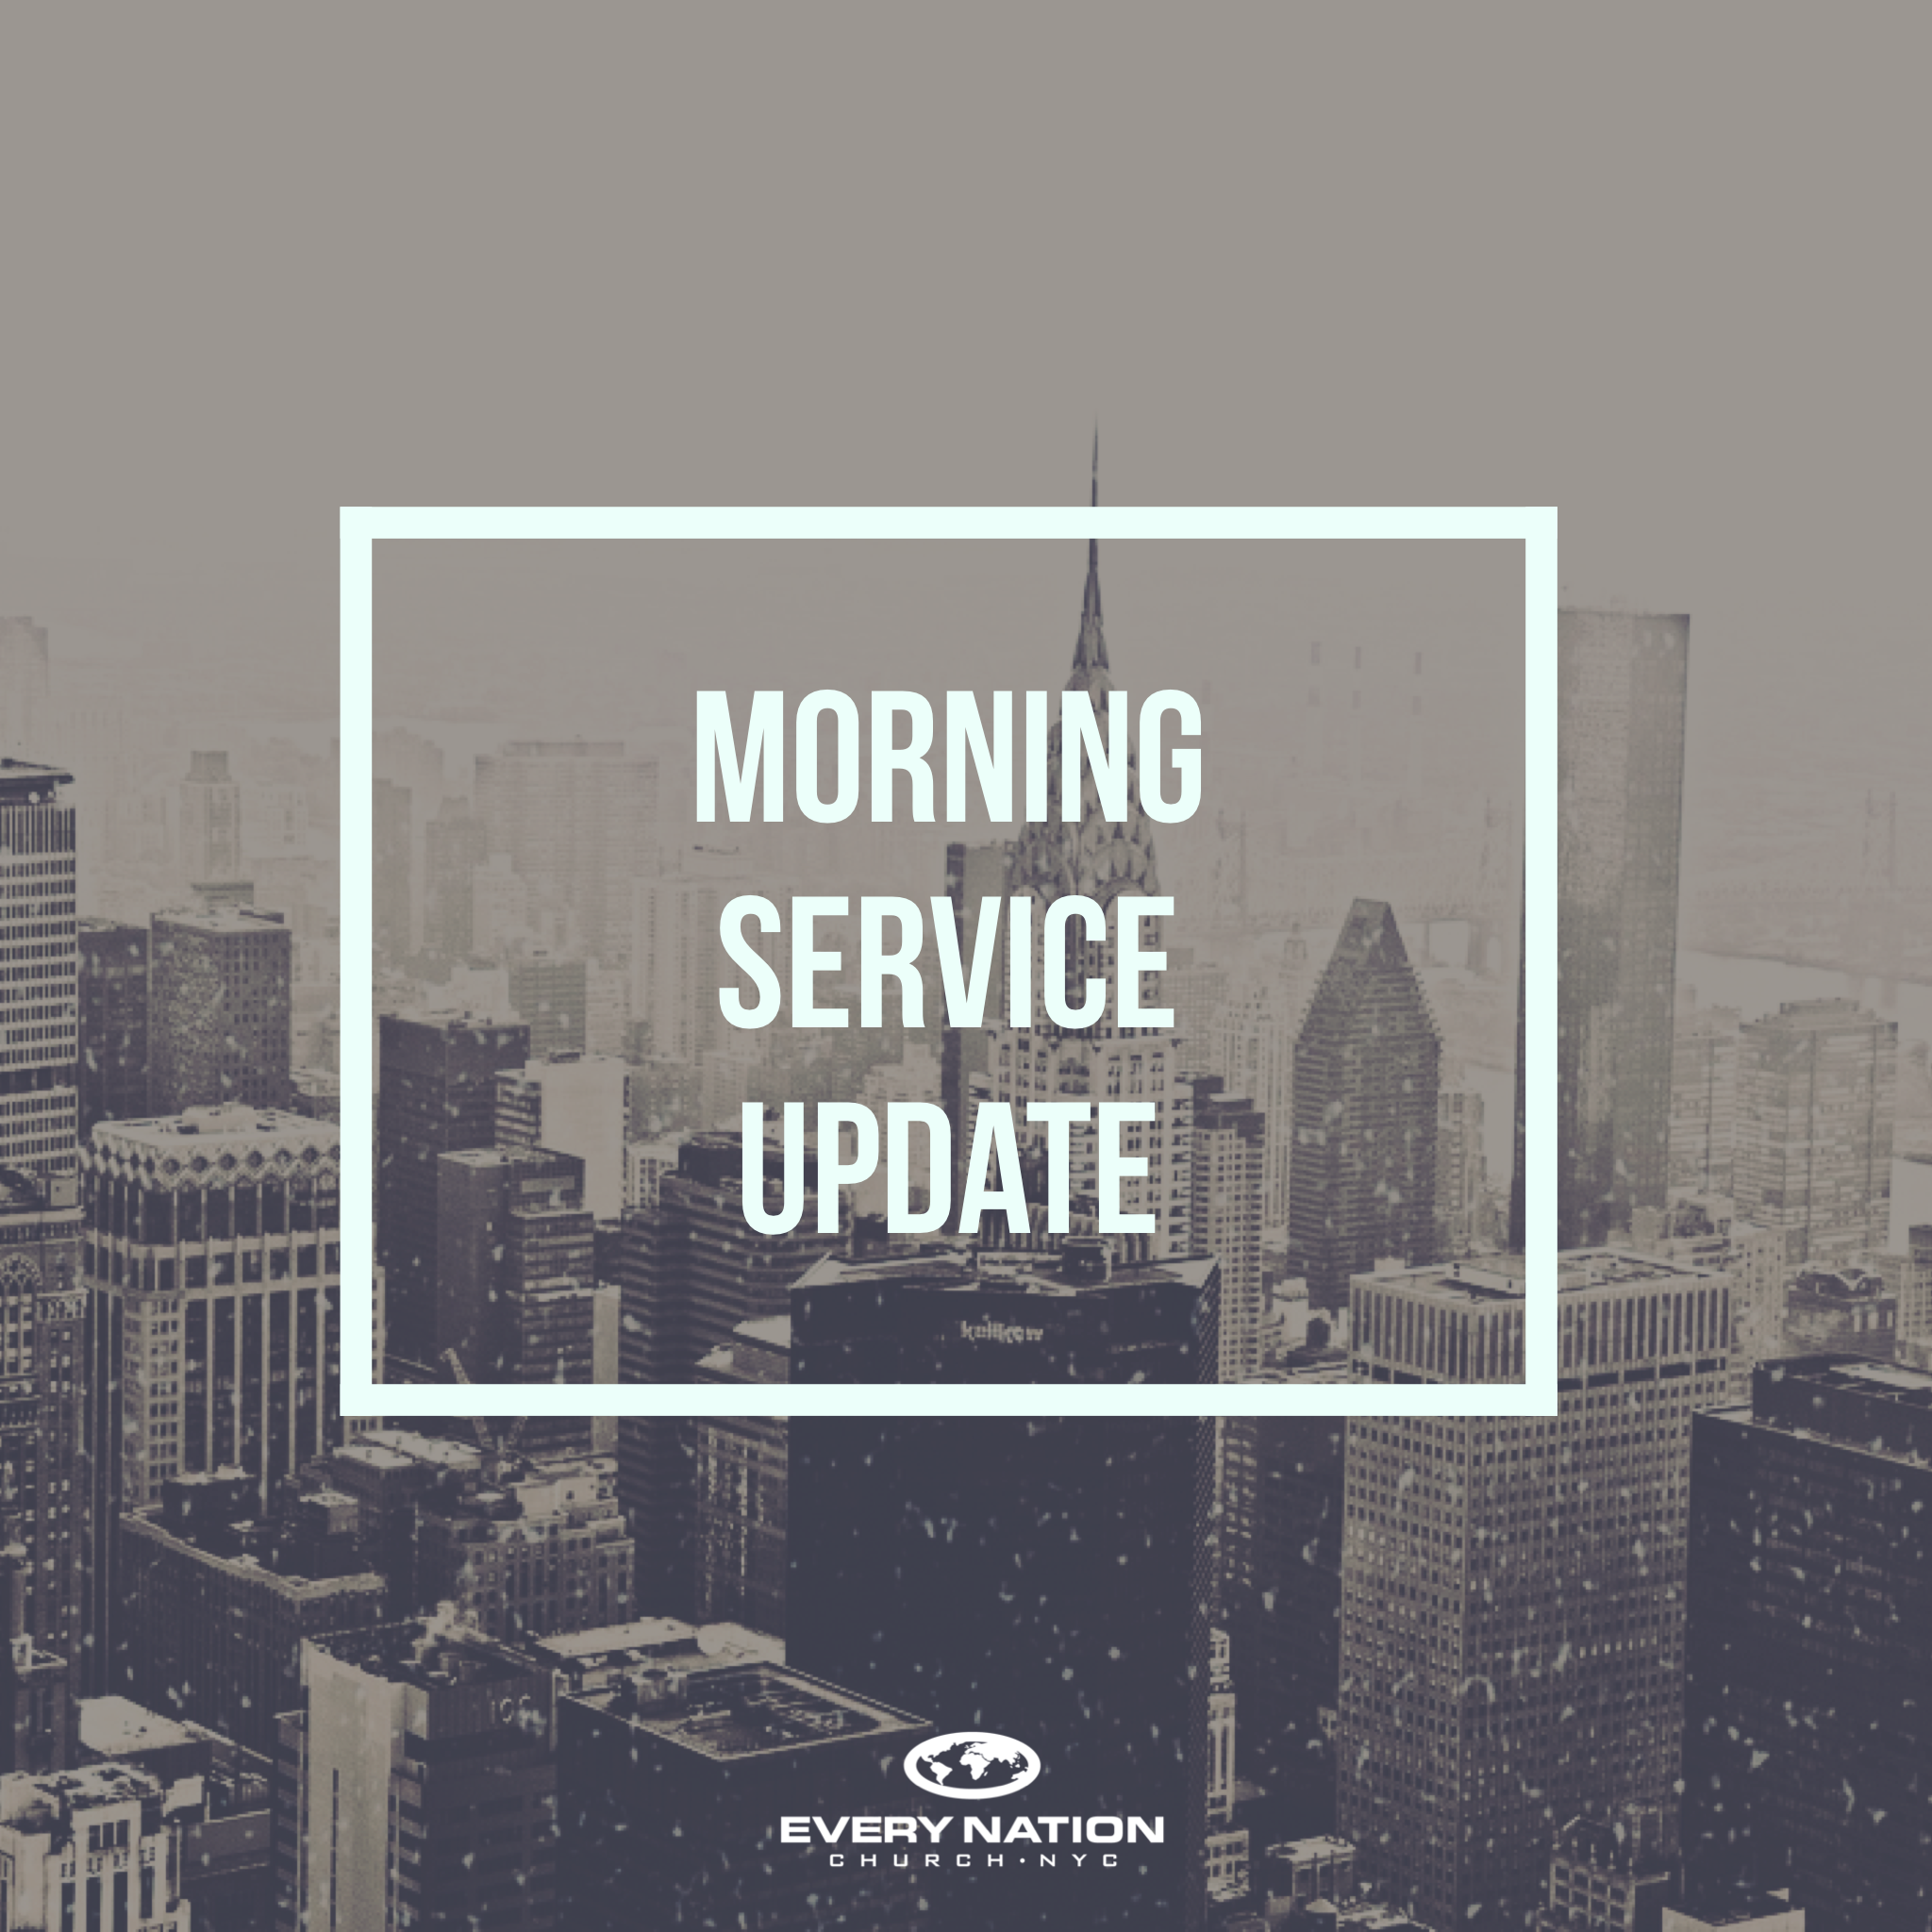 Morning Service Update Image